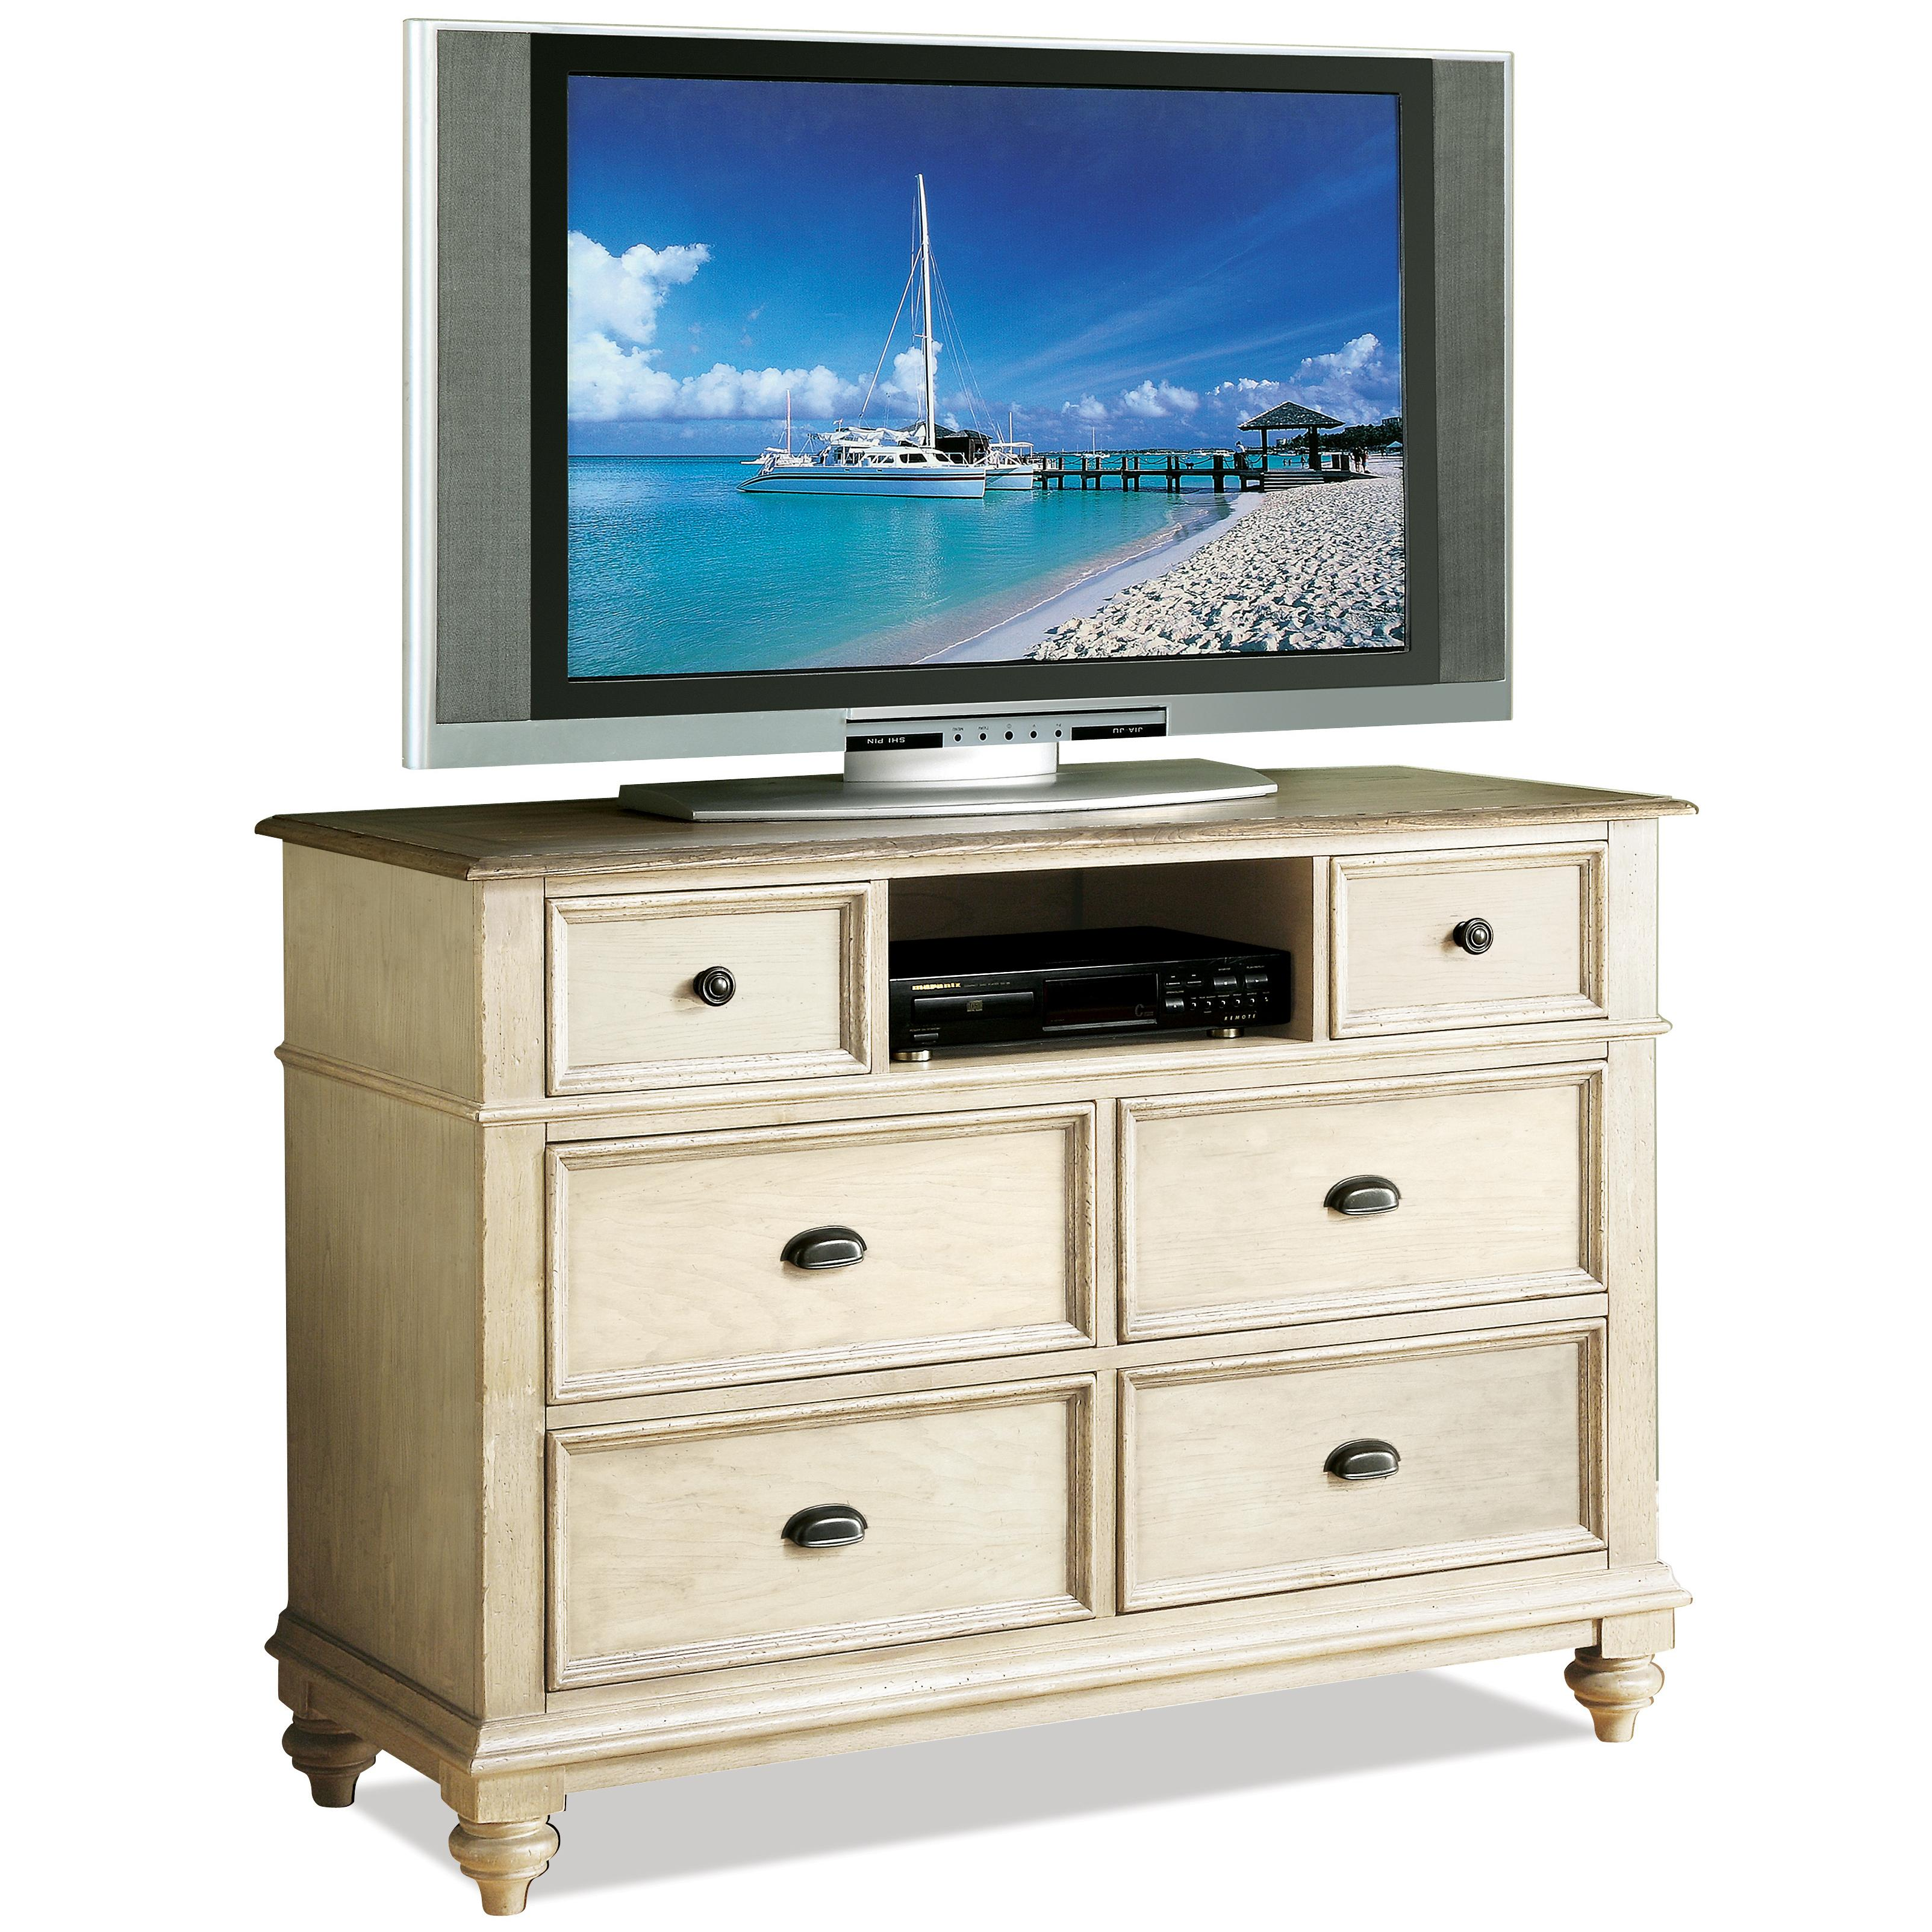 Riverside Furniture Coventry Two Tone 32566 6 Drawer Entertainment Chest Dunk Bright